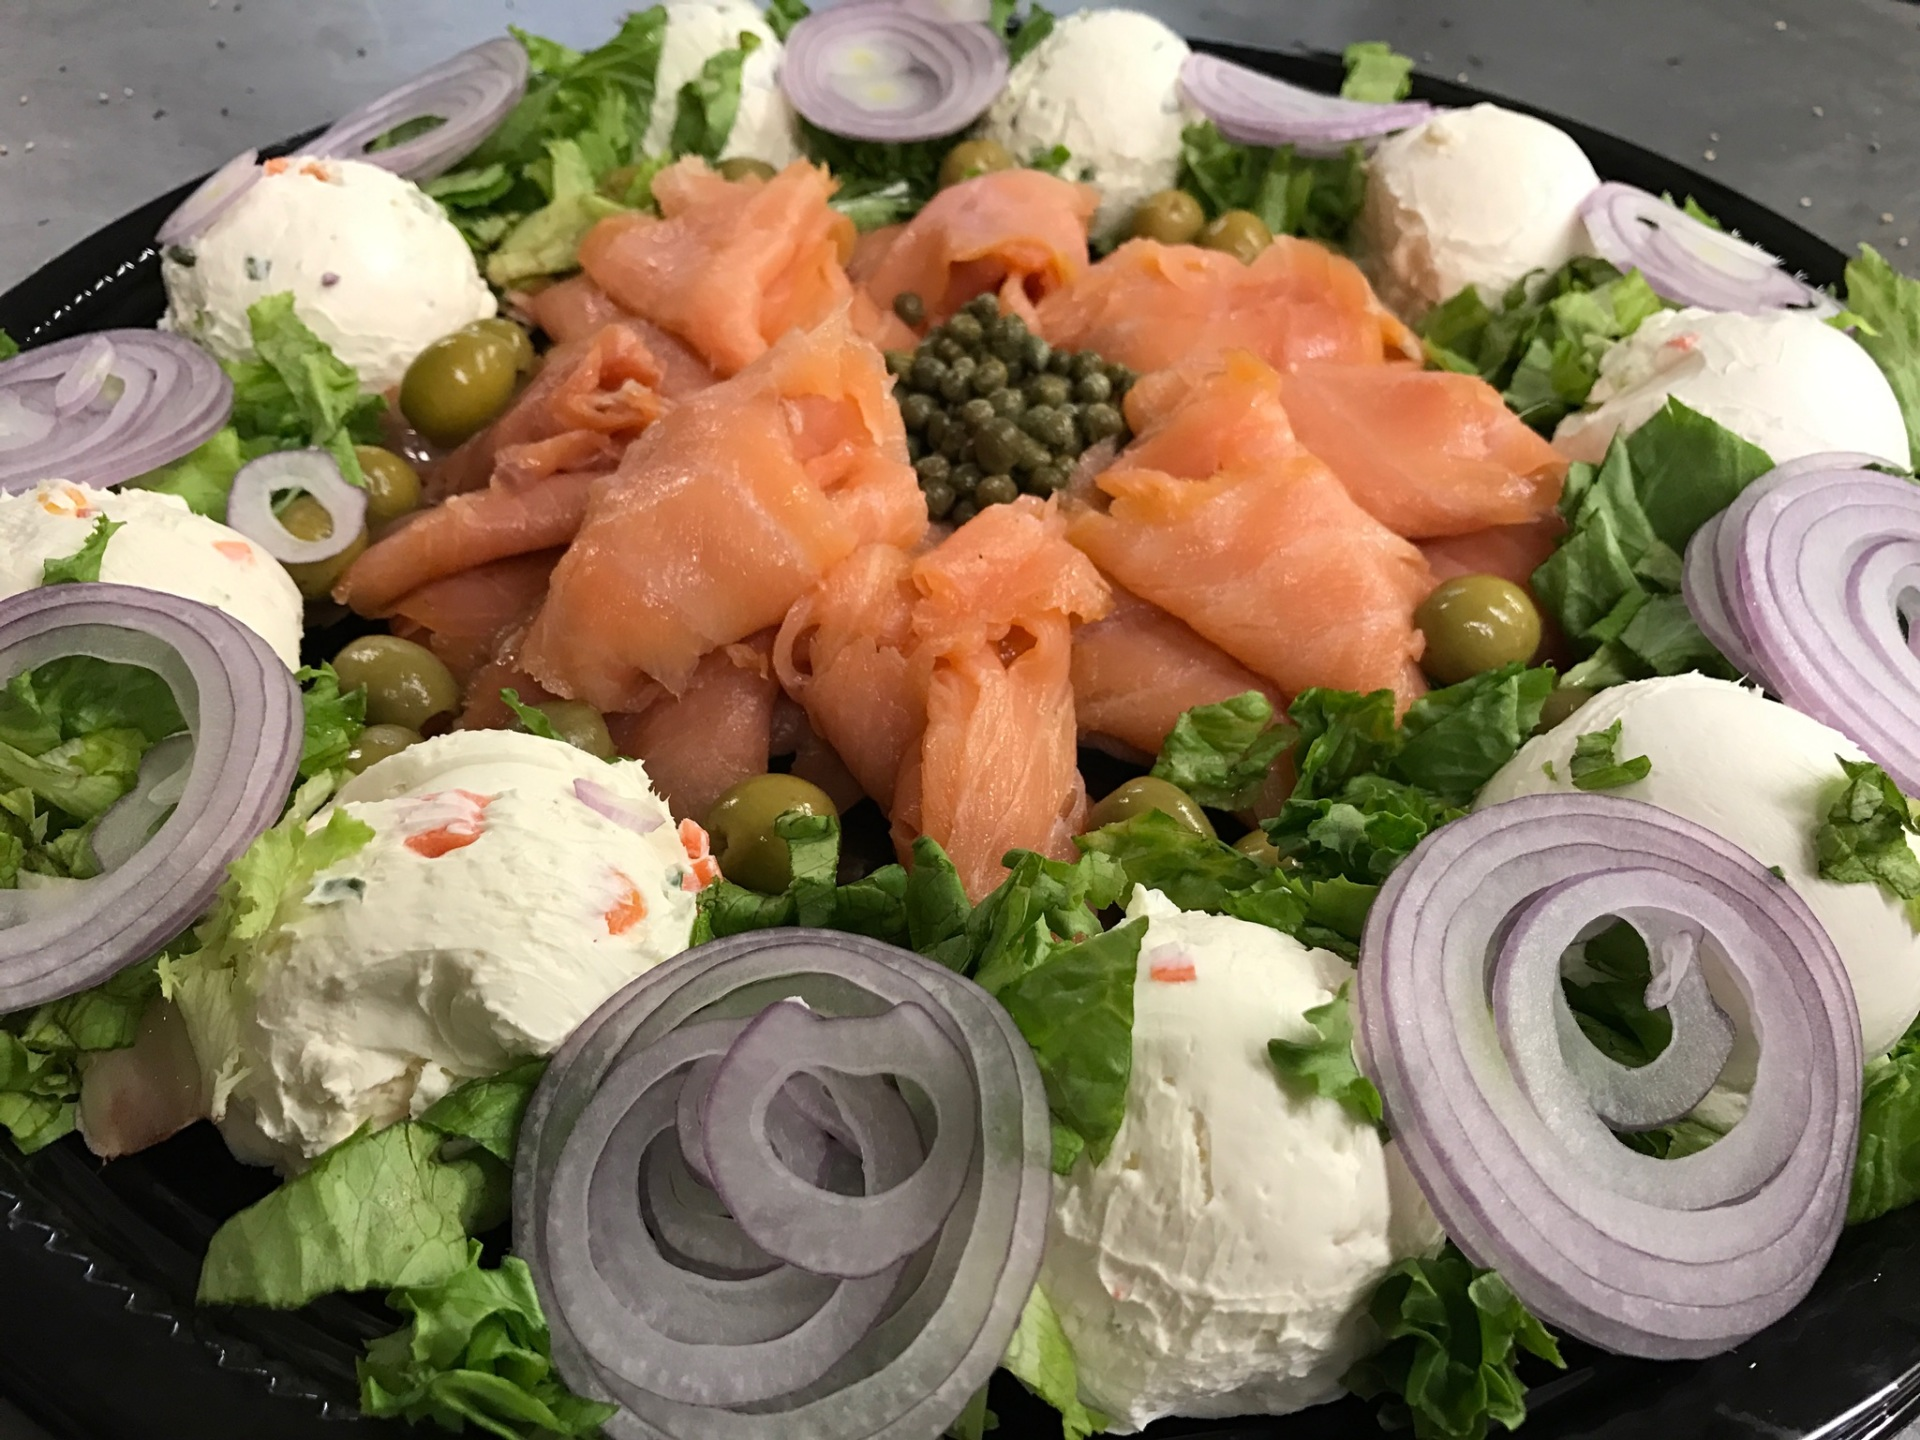 A platter of lox, onions, capers, and cream cheese.